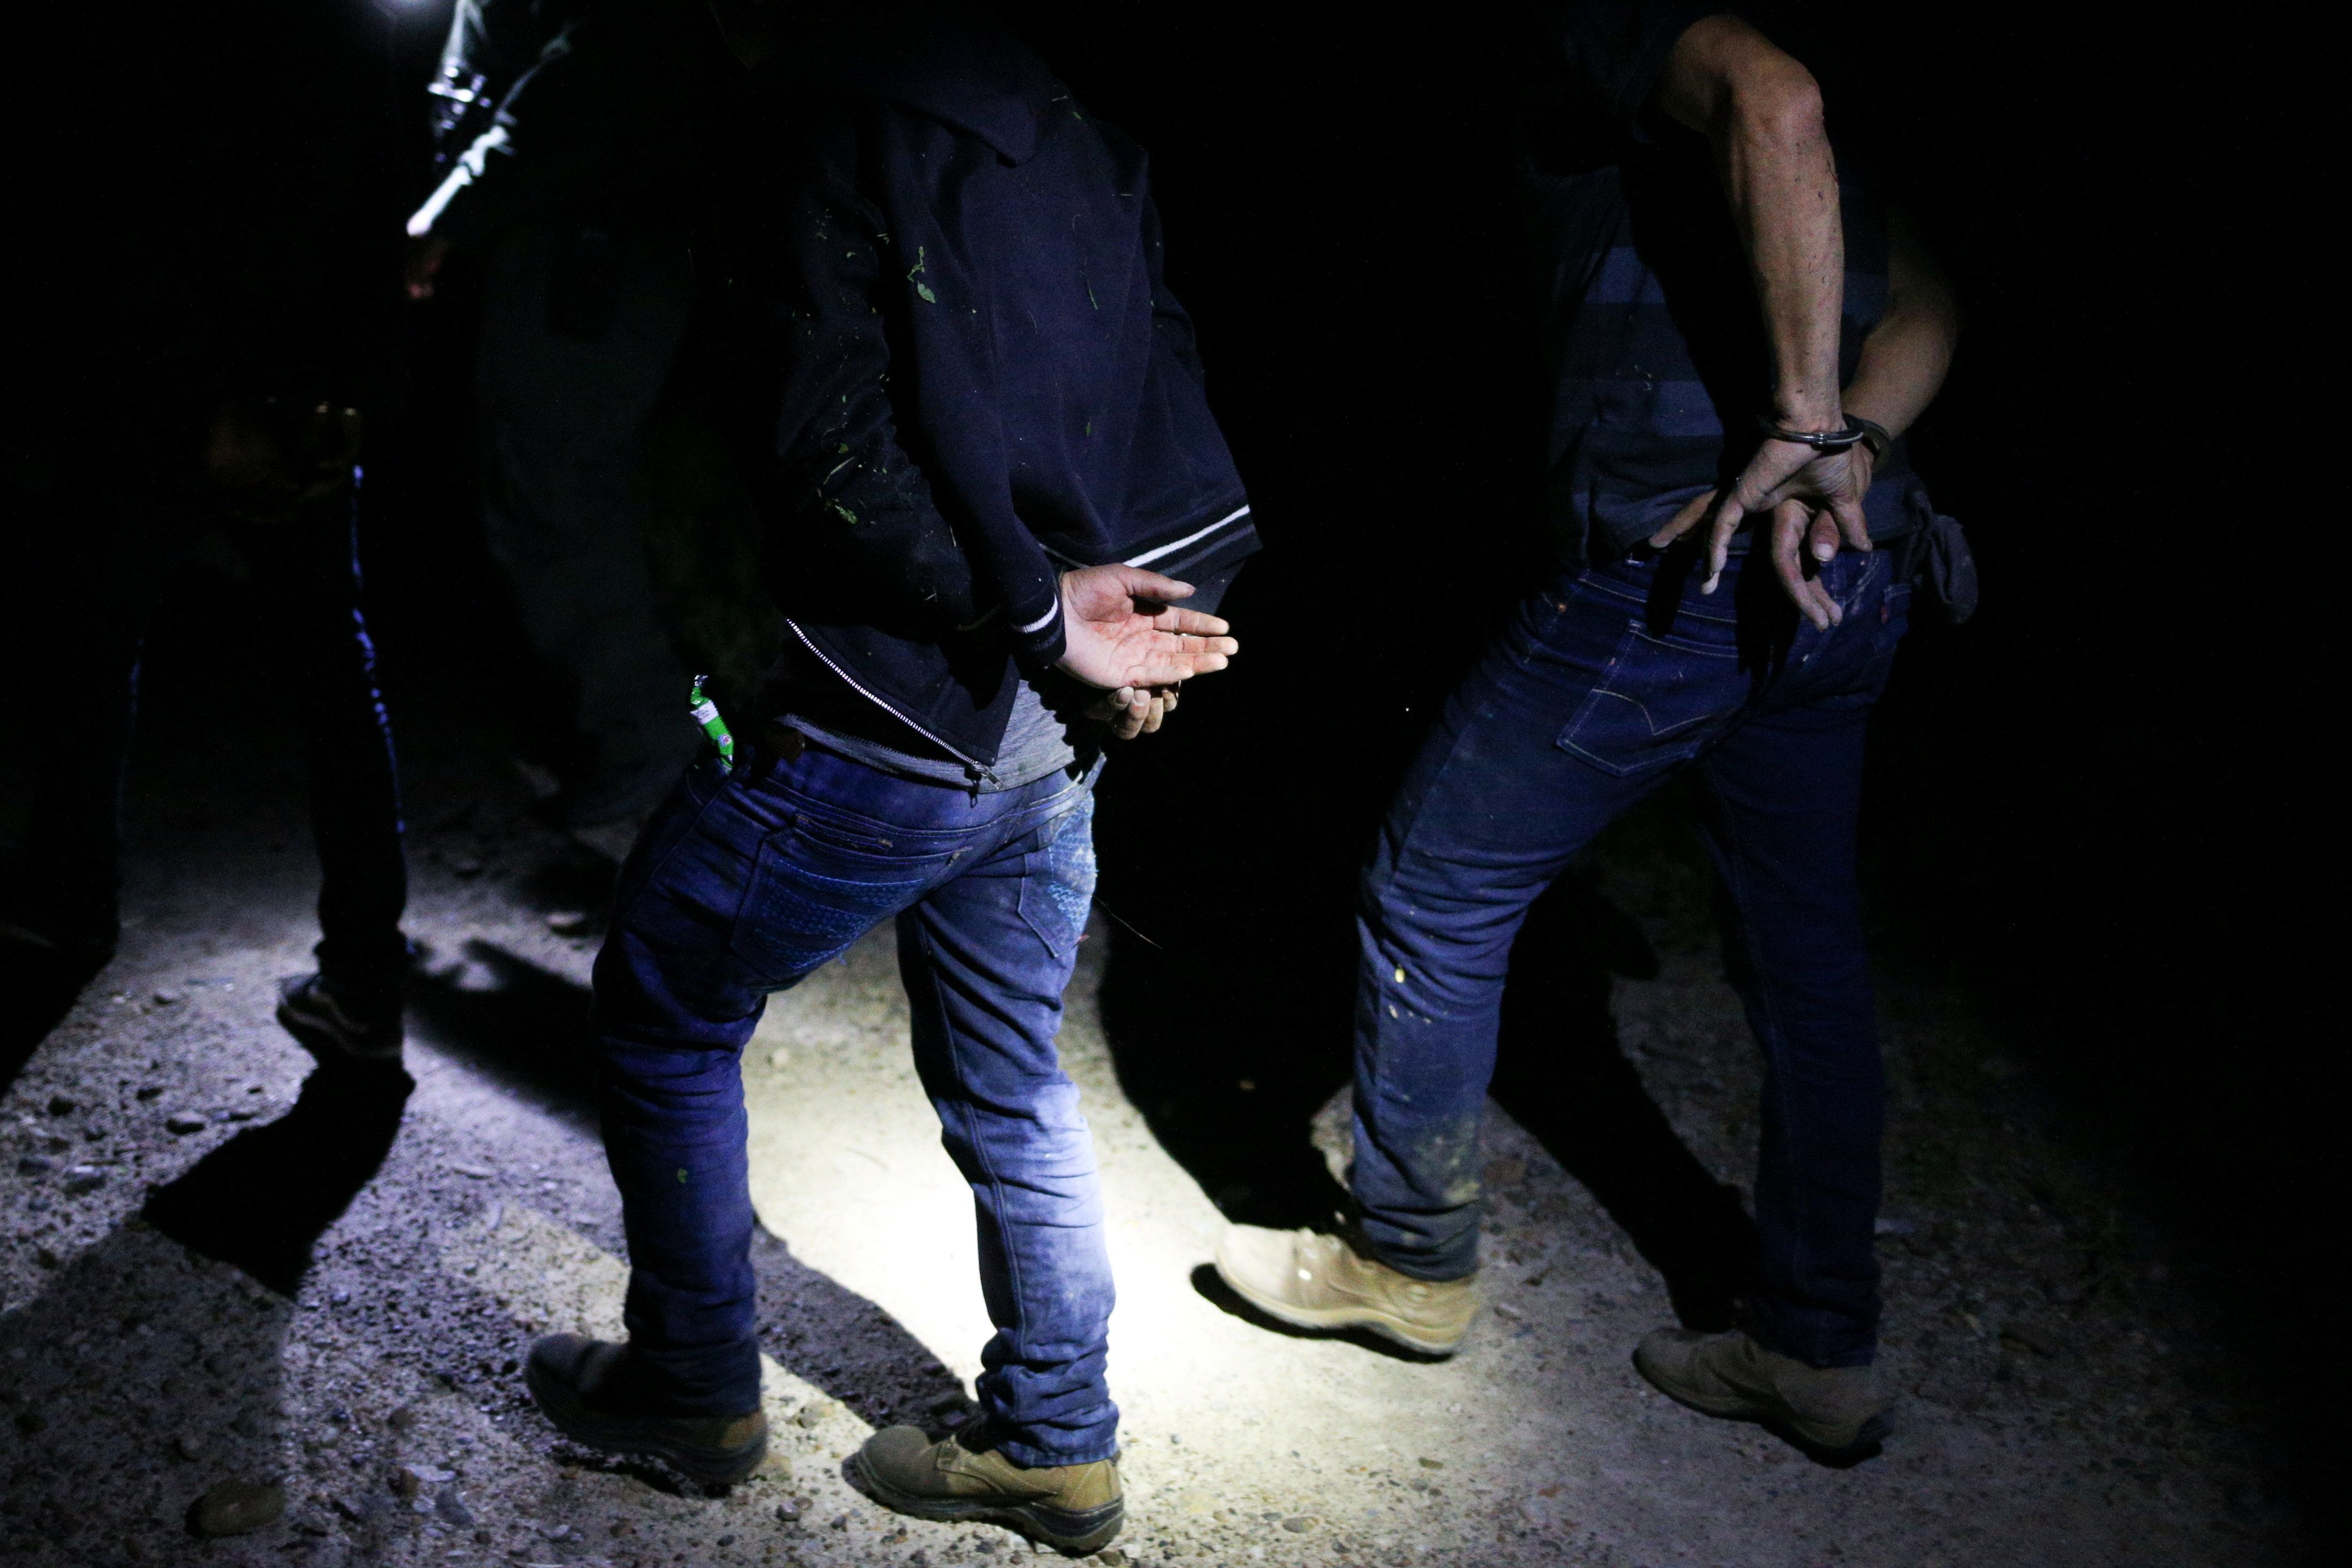 Men who illegally crossed the Mexico-U.S. border are apprehended by U.S. Border Patrol agents near McAllen, Texas, U.S.